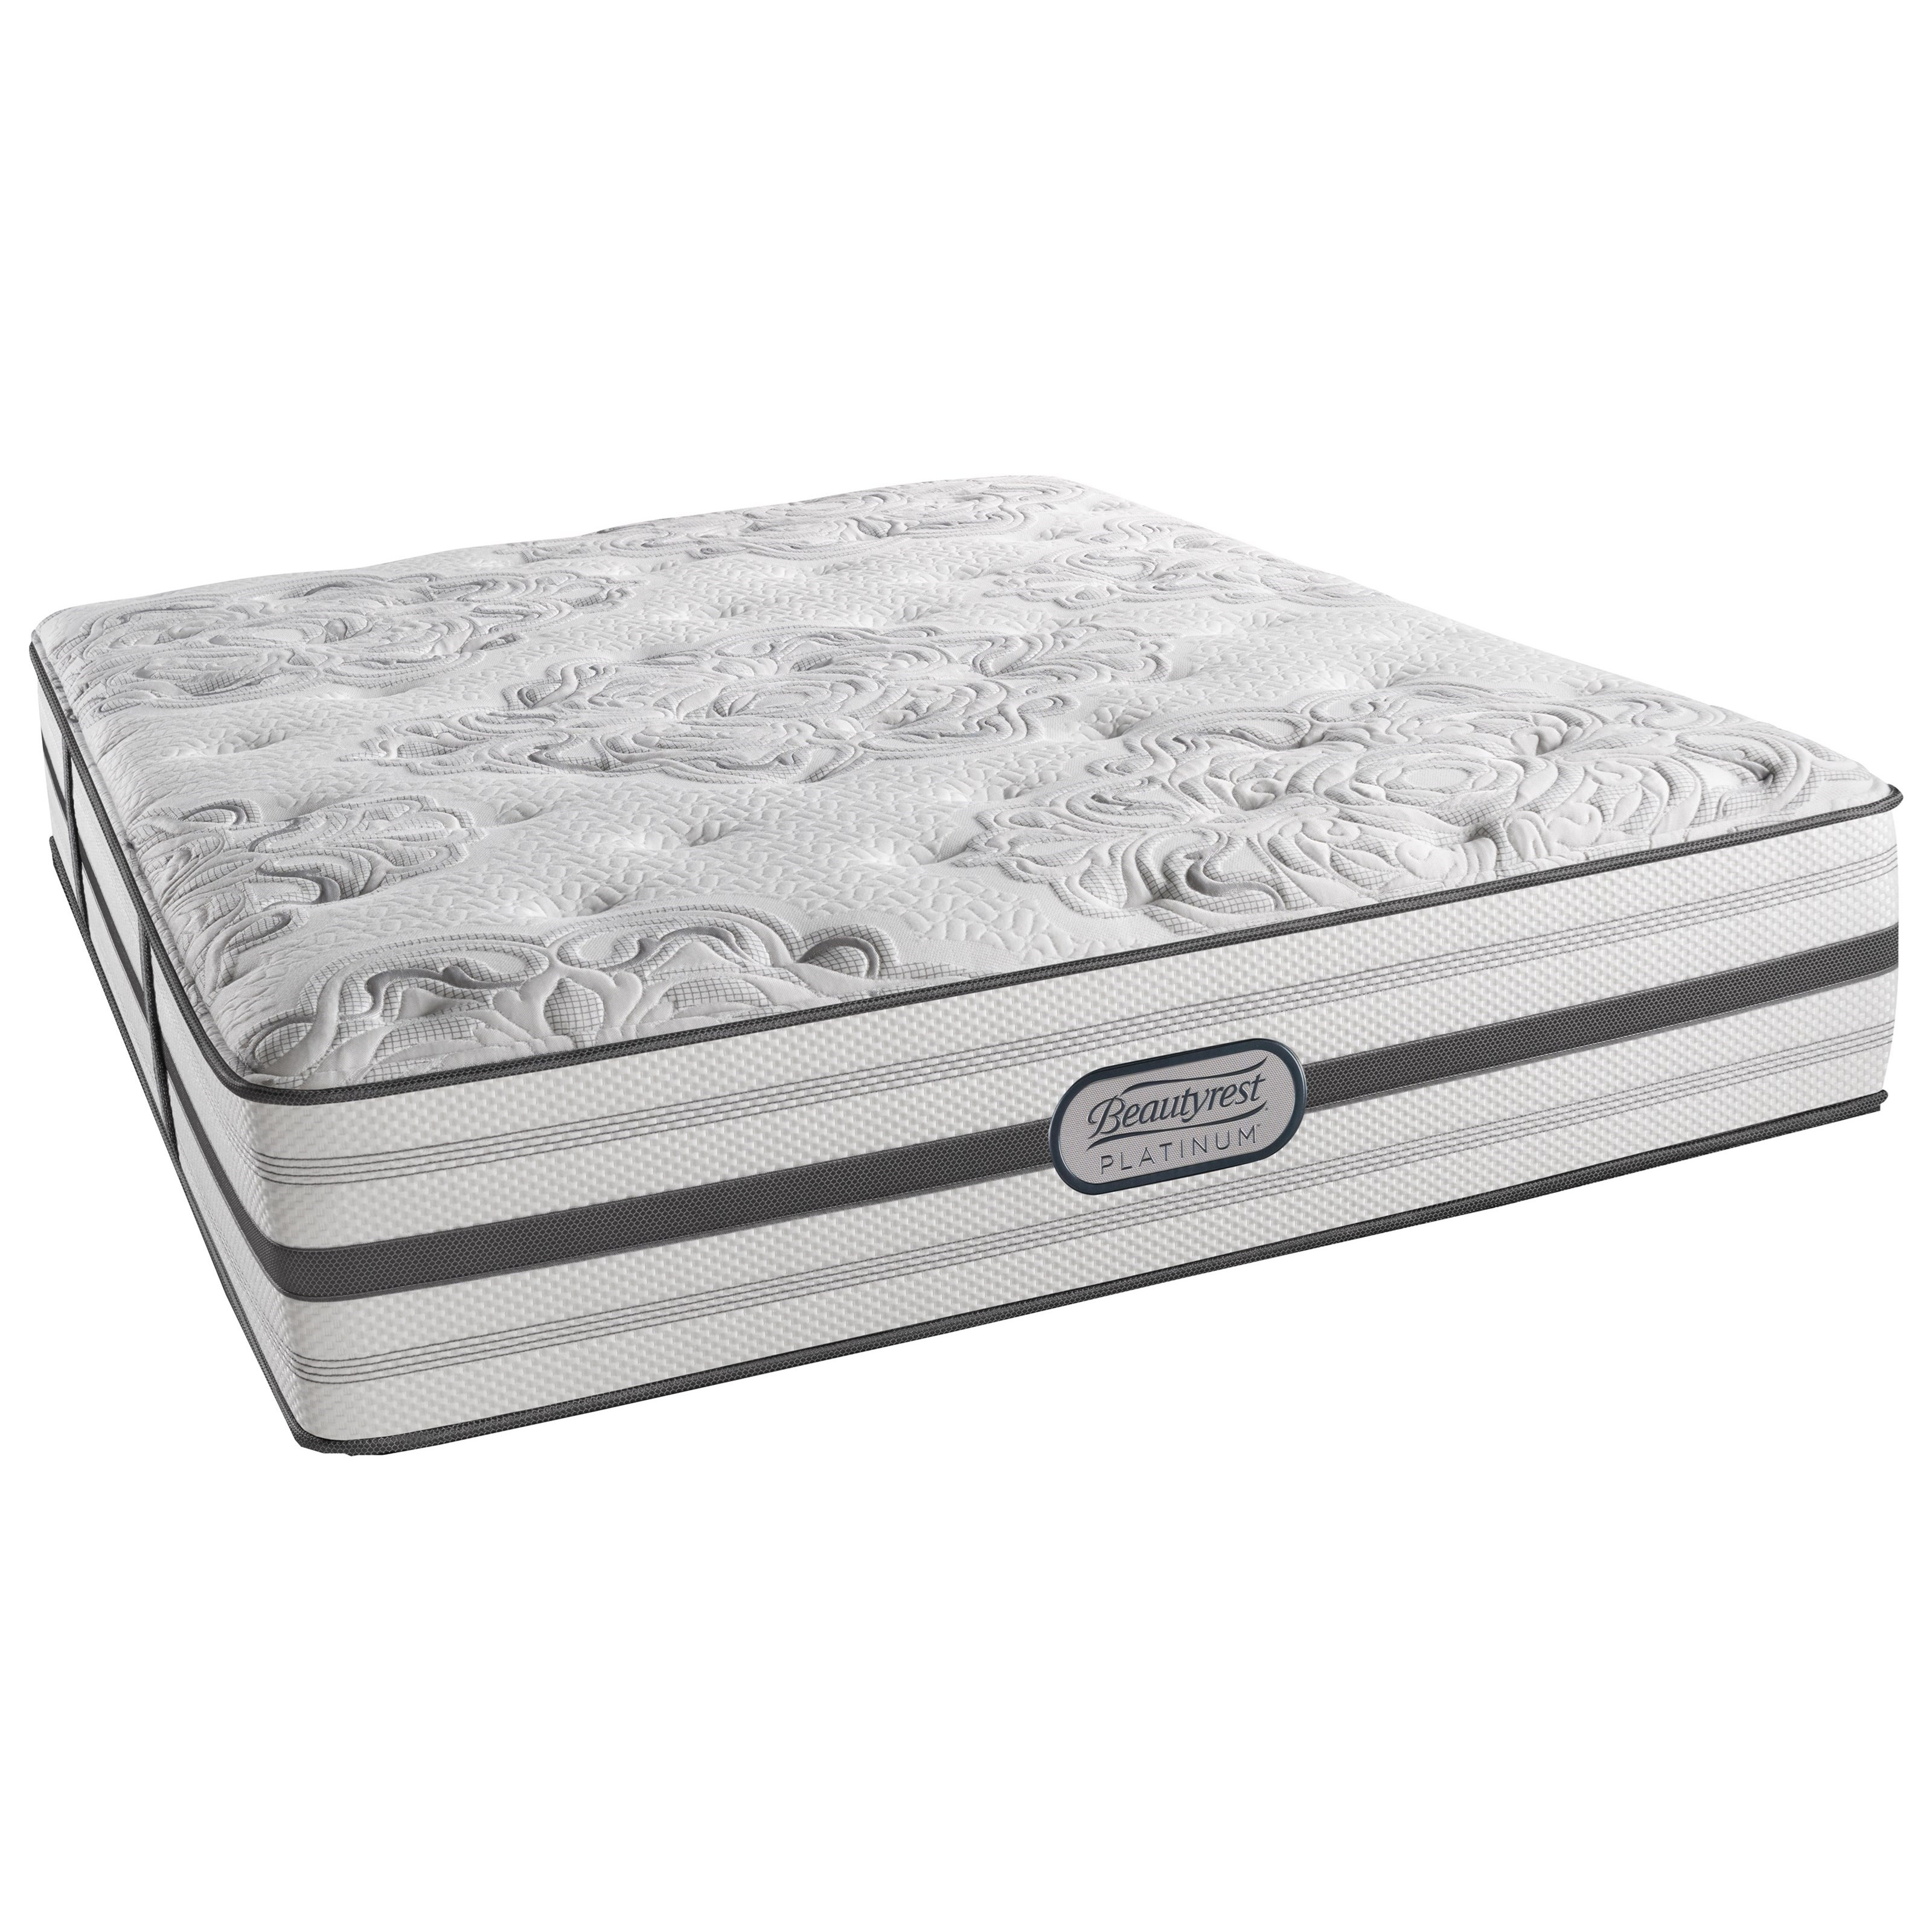 "Beautyrest Platinum Brittany Cal King Luxury Firm 14.5"" Mattress - Item Number: LV2LFM-CK"